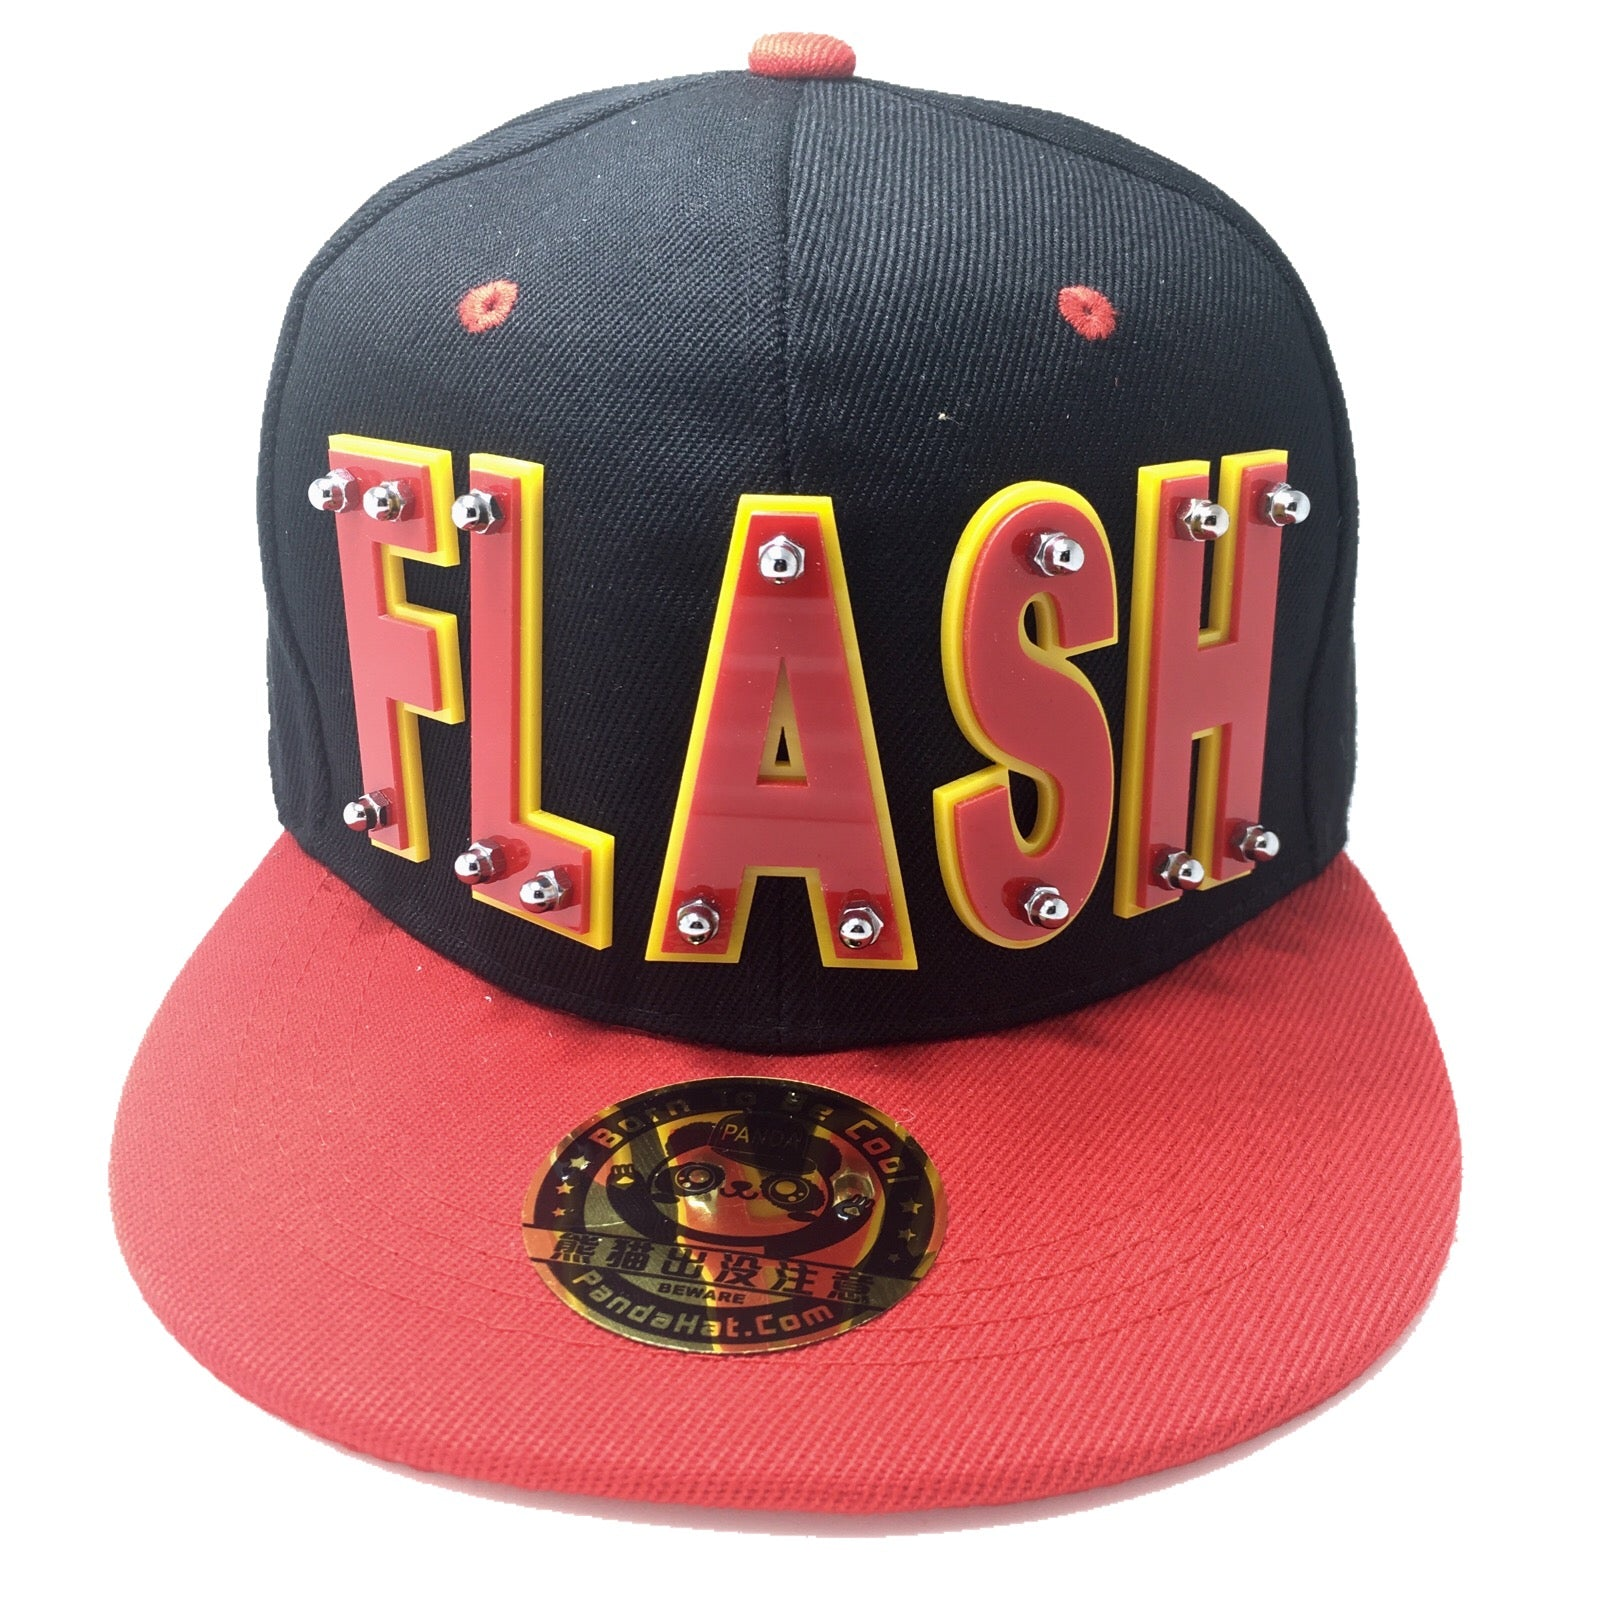 Flash Hat In Black With Red Brim Pandahat